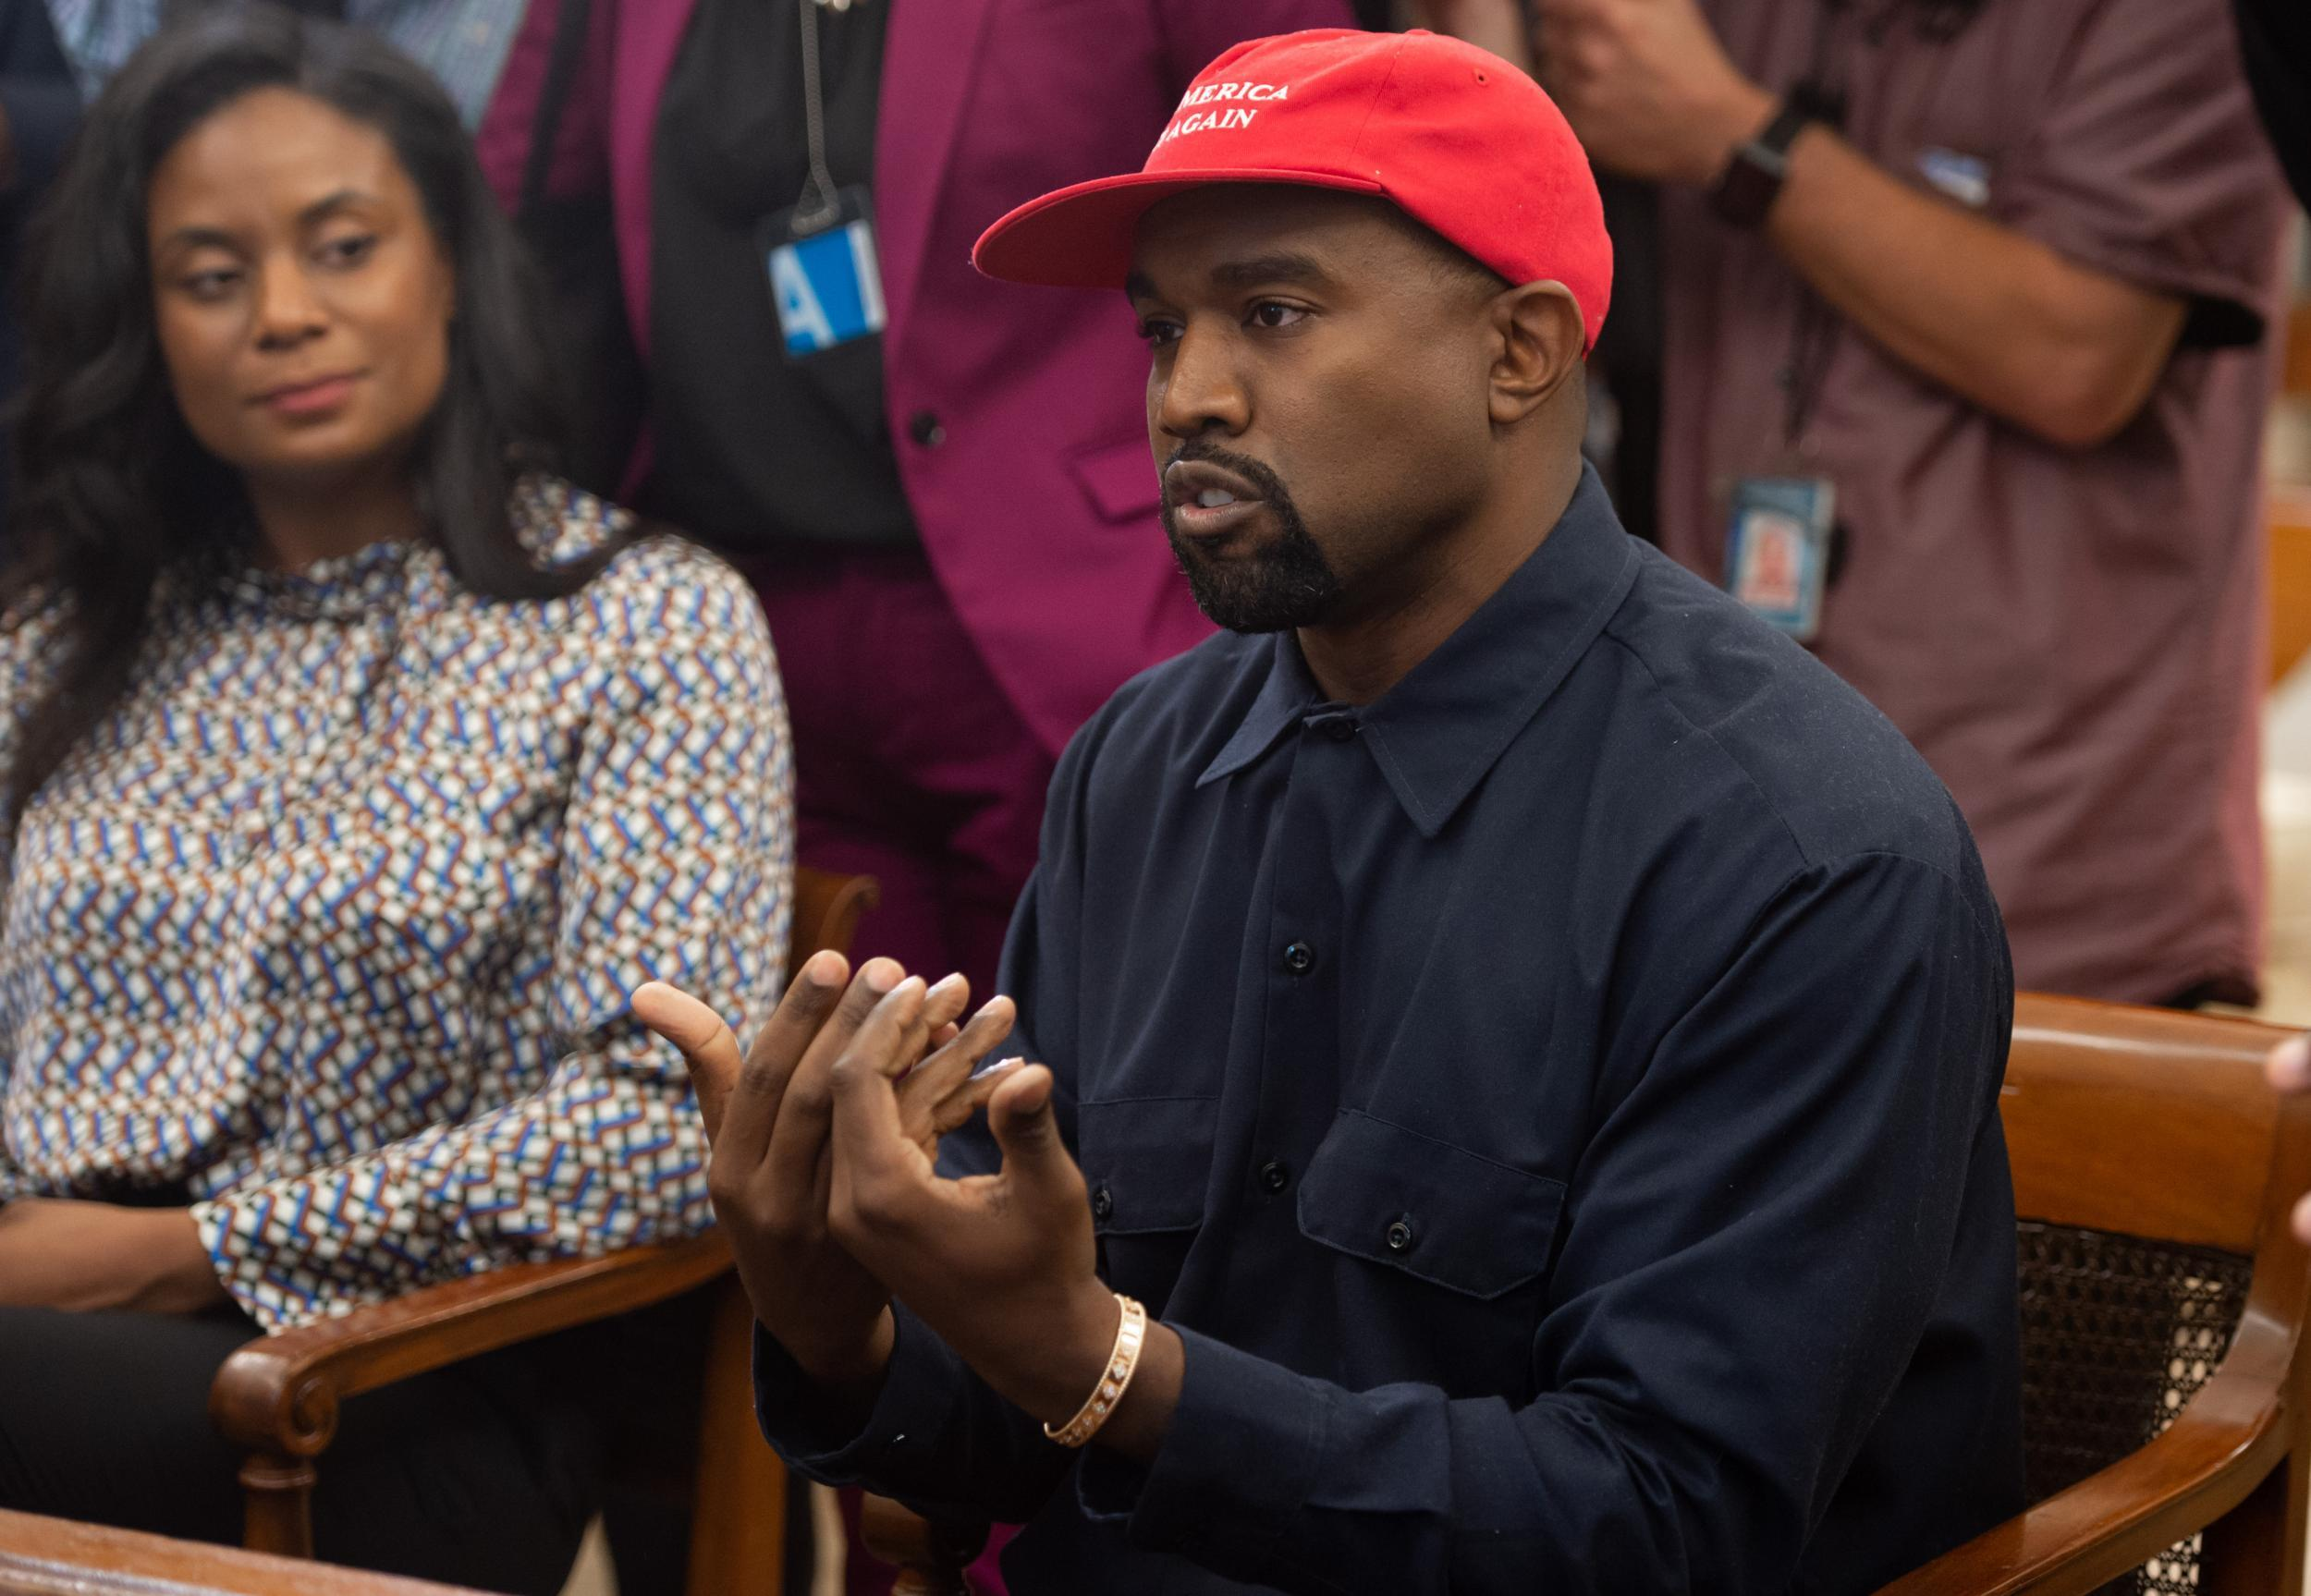 Kanye West reveals to Donald Trump that he was misdiagnosed with bipolar disorder by doctor